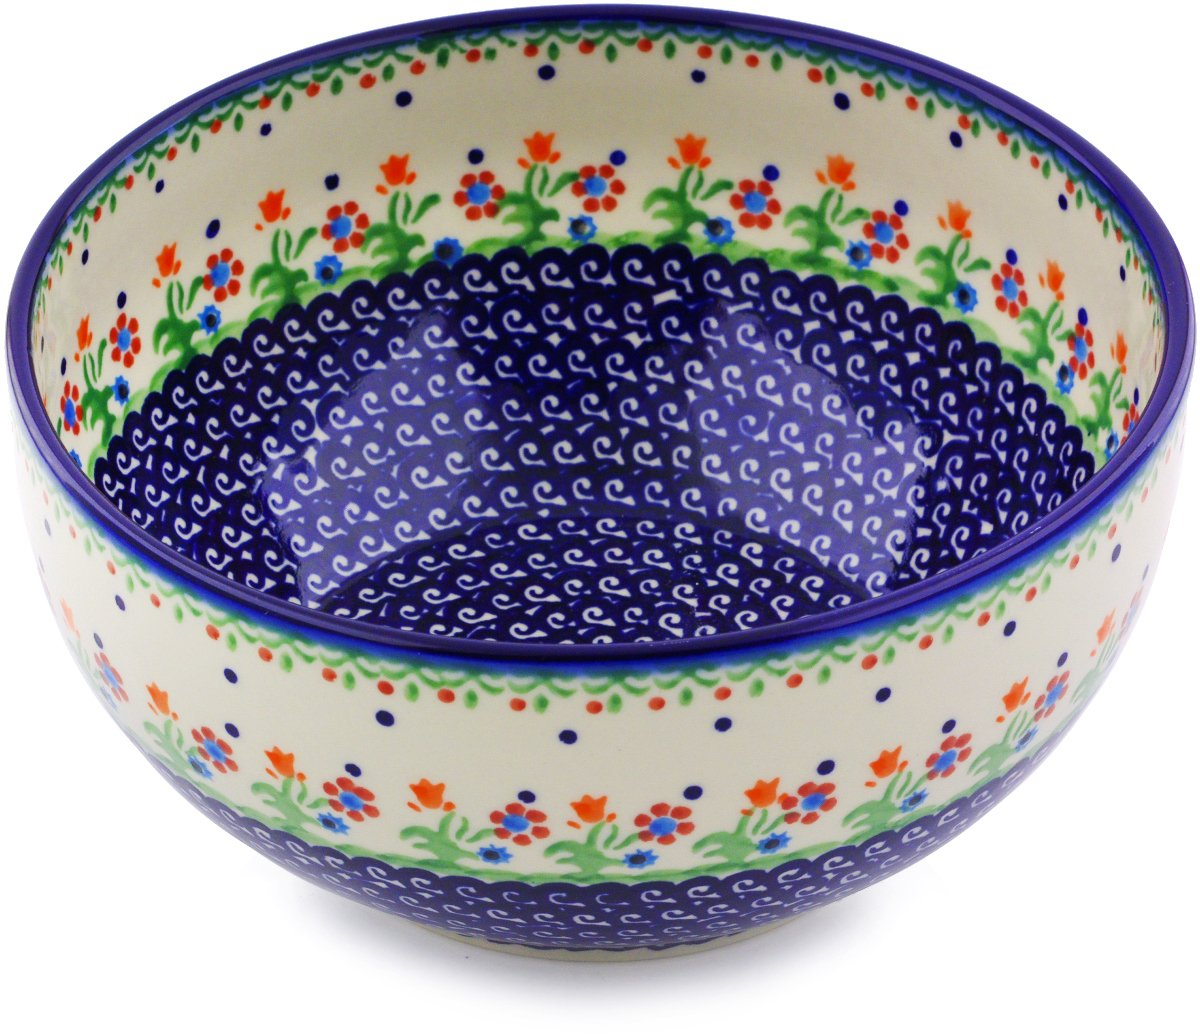 Polish Pottery 9-inch Bowl (Spring Flowers Theme) + Certificate of Authenticity